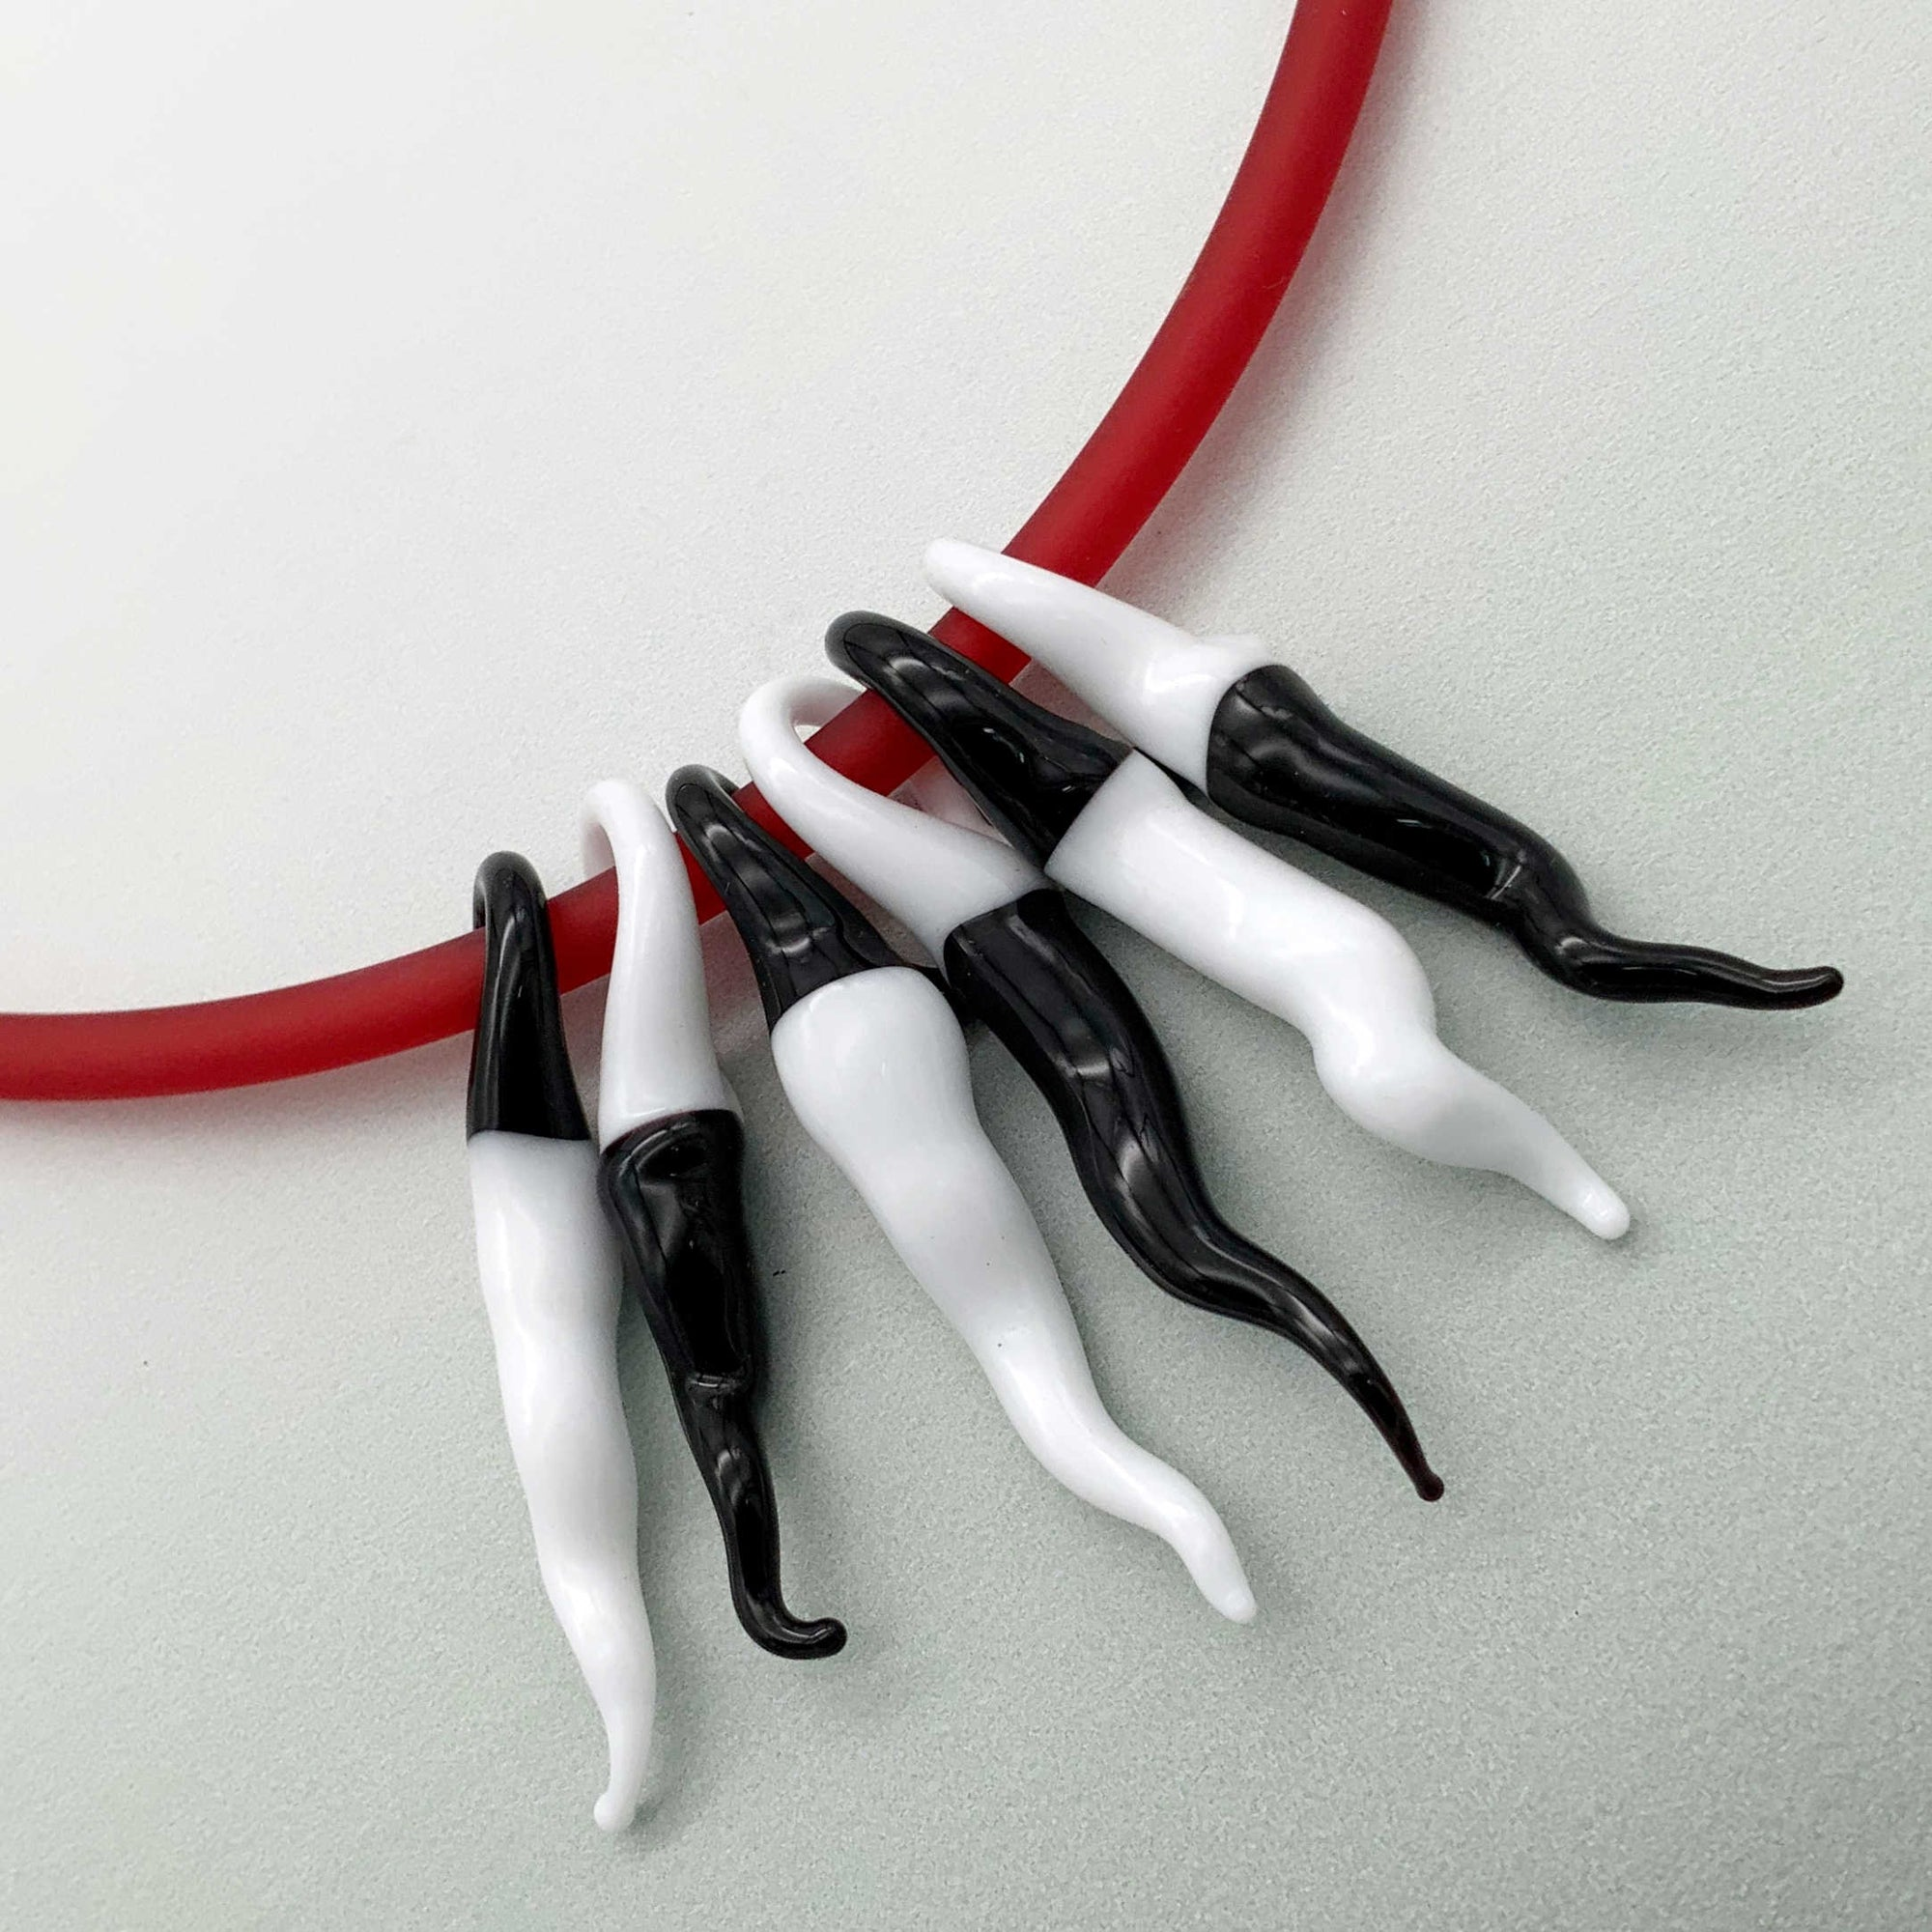 6 Piece black and white glass chilli necklace on a red PVC